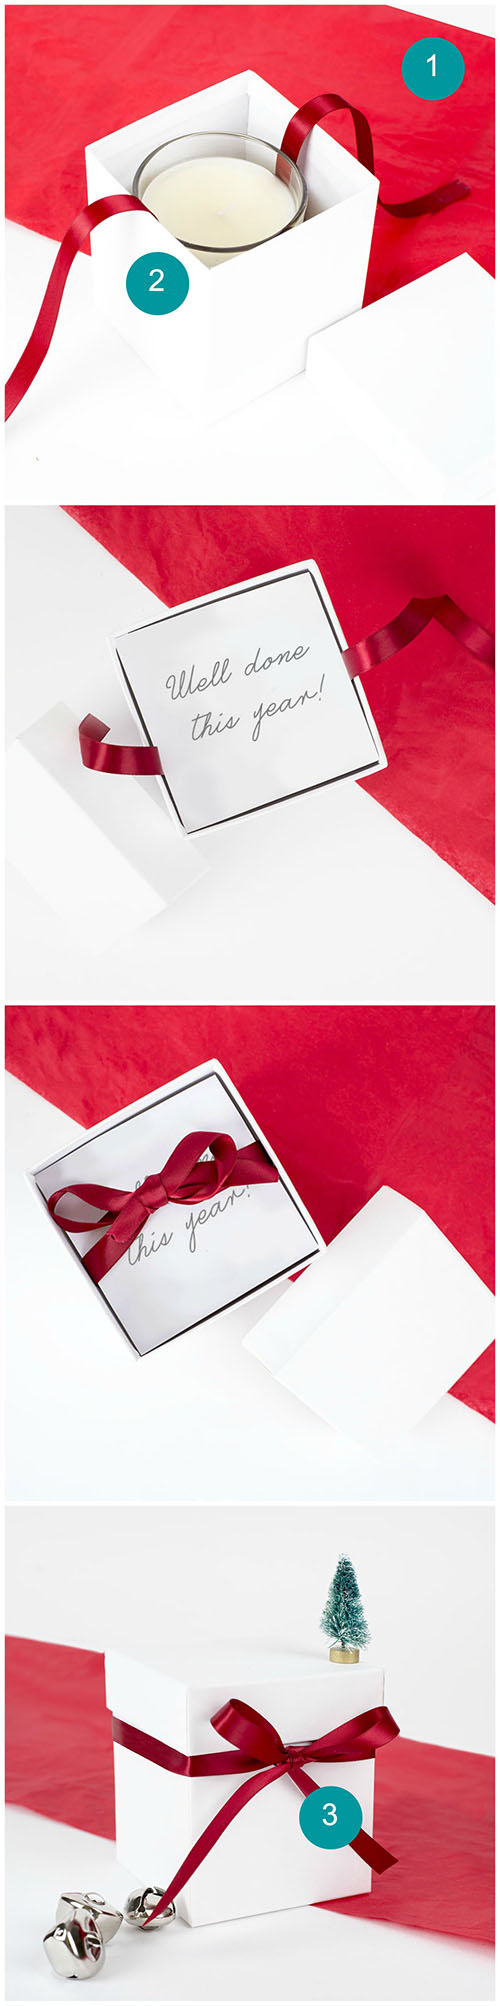 Corporate gift wrapping tips